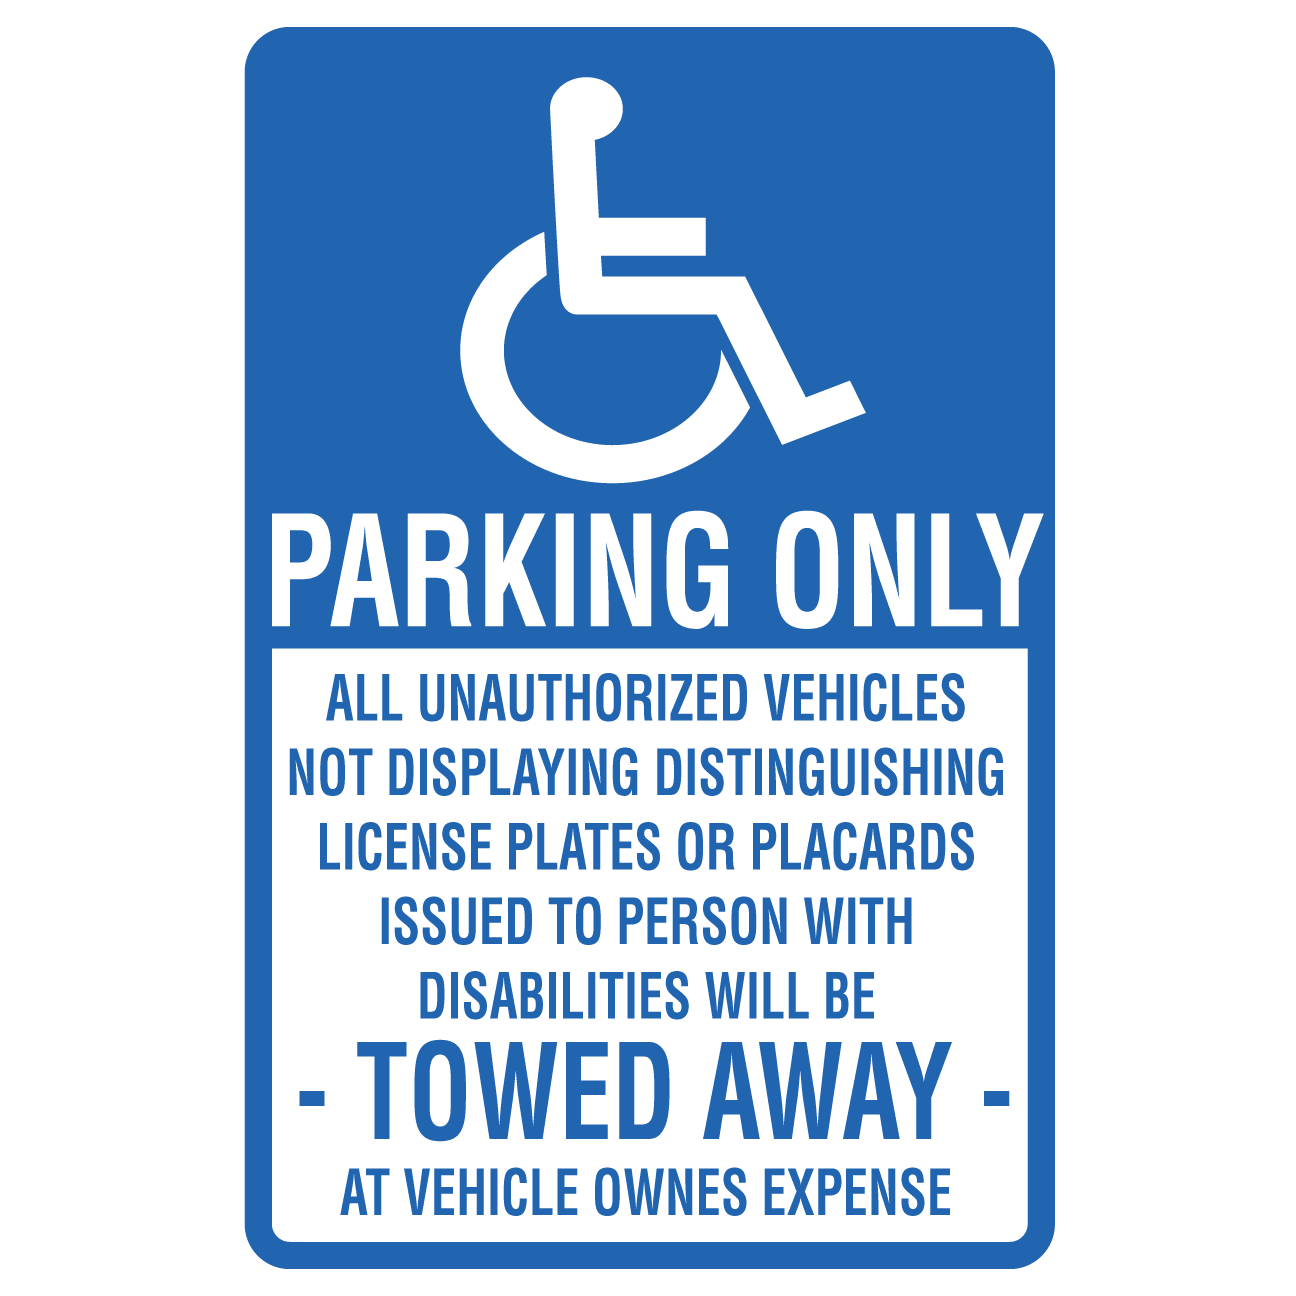 Handicap Parking Unauthorized Will Be Towed